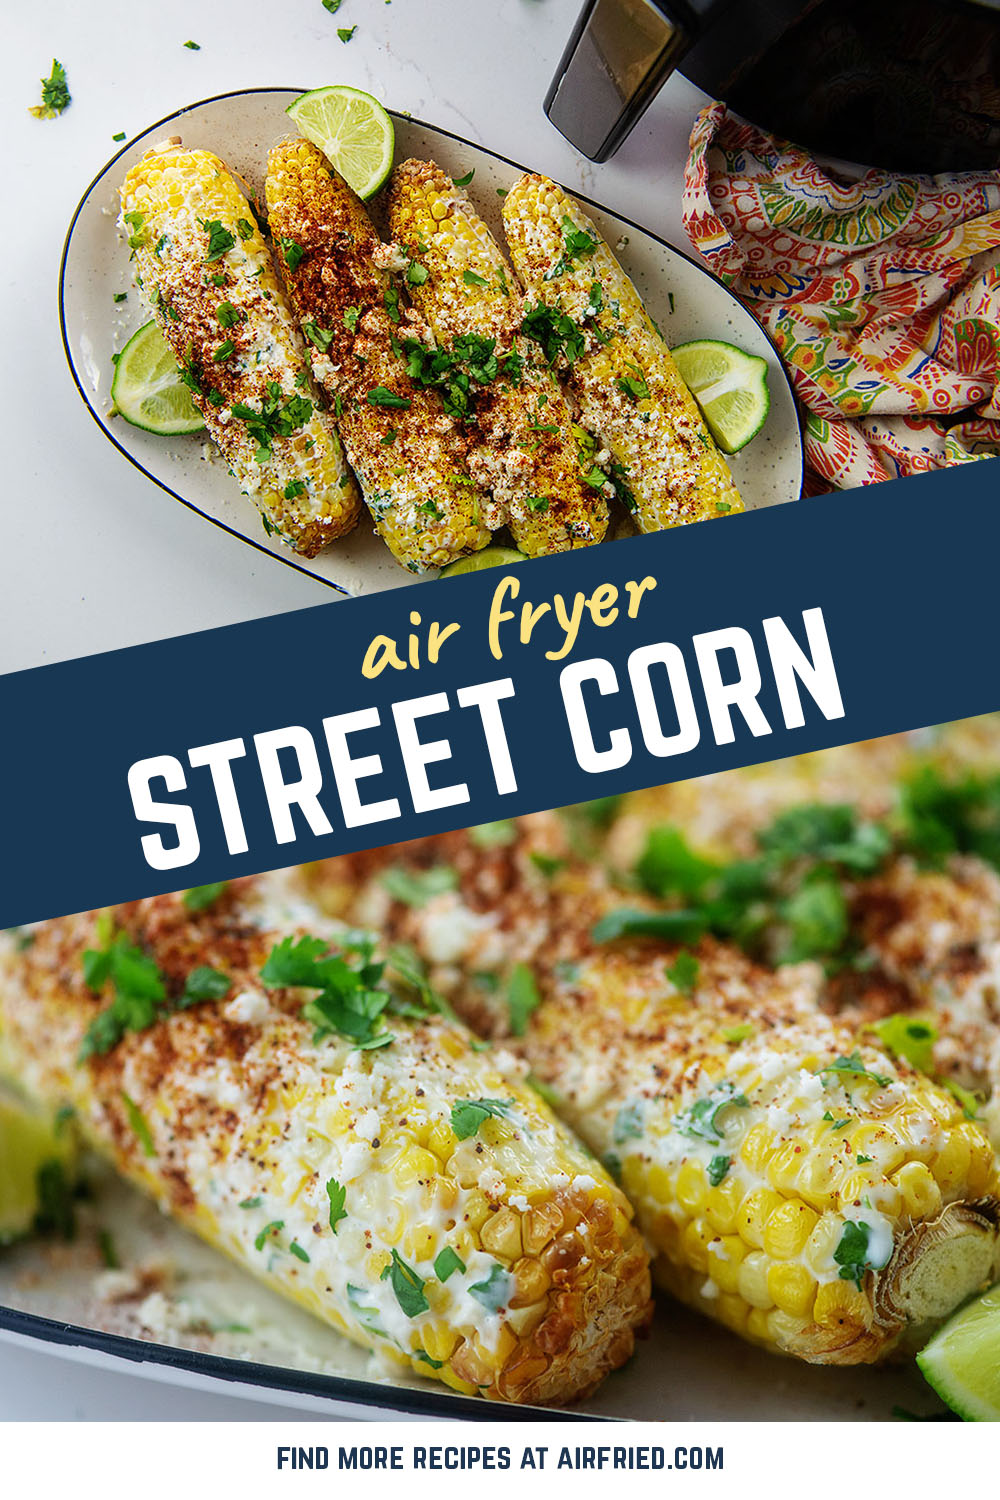 This is a simple street corn recipe using the air fryer and a creamy coating mixed with Mexican-inspired seasonings.